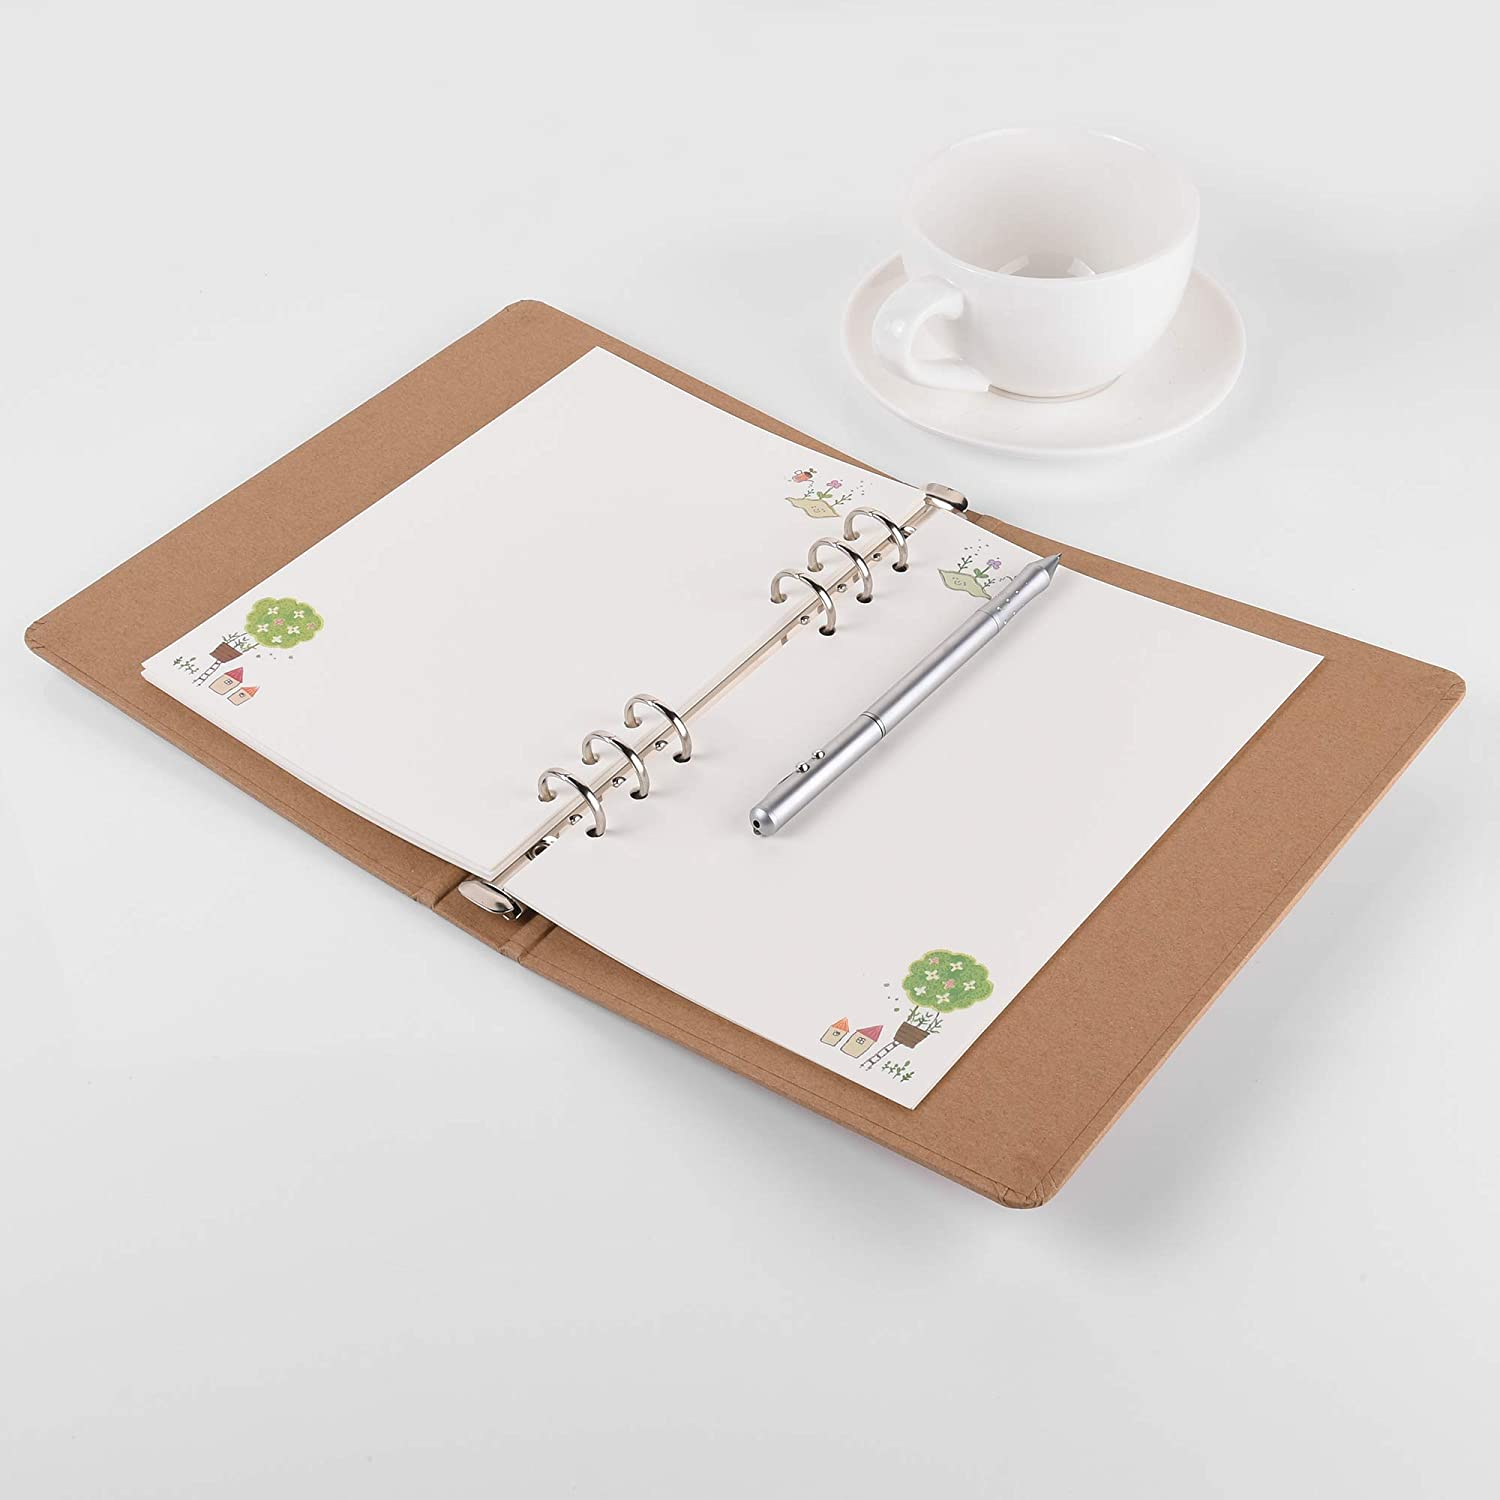 A5,Blank/&Line Bluecell 2 Sets 6-Holes Planner Refill Paper for 6-Ring Binder Filofax Notebooks Travel Diary Journal Planner